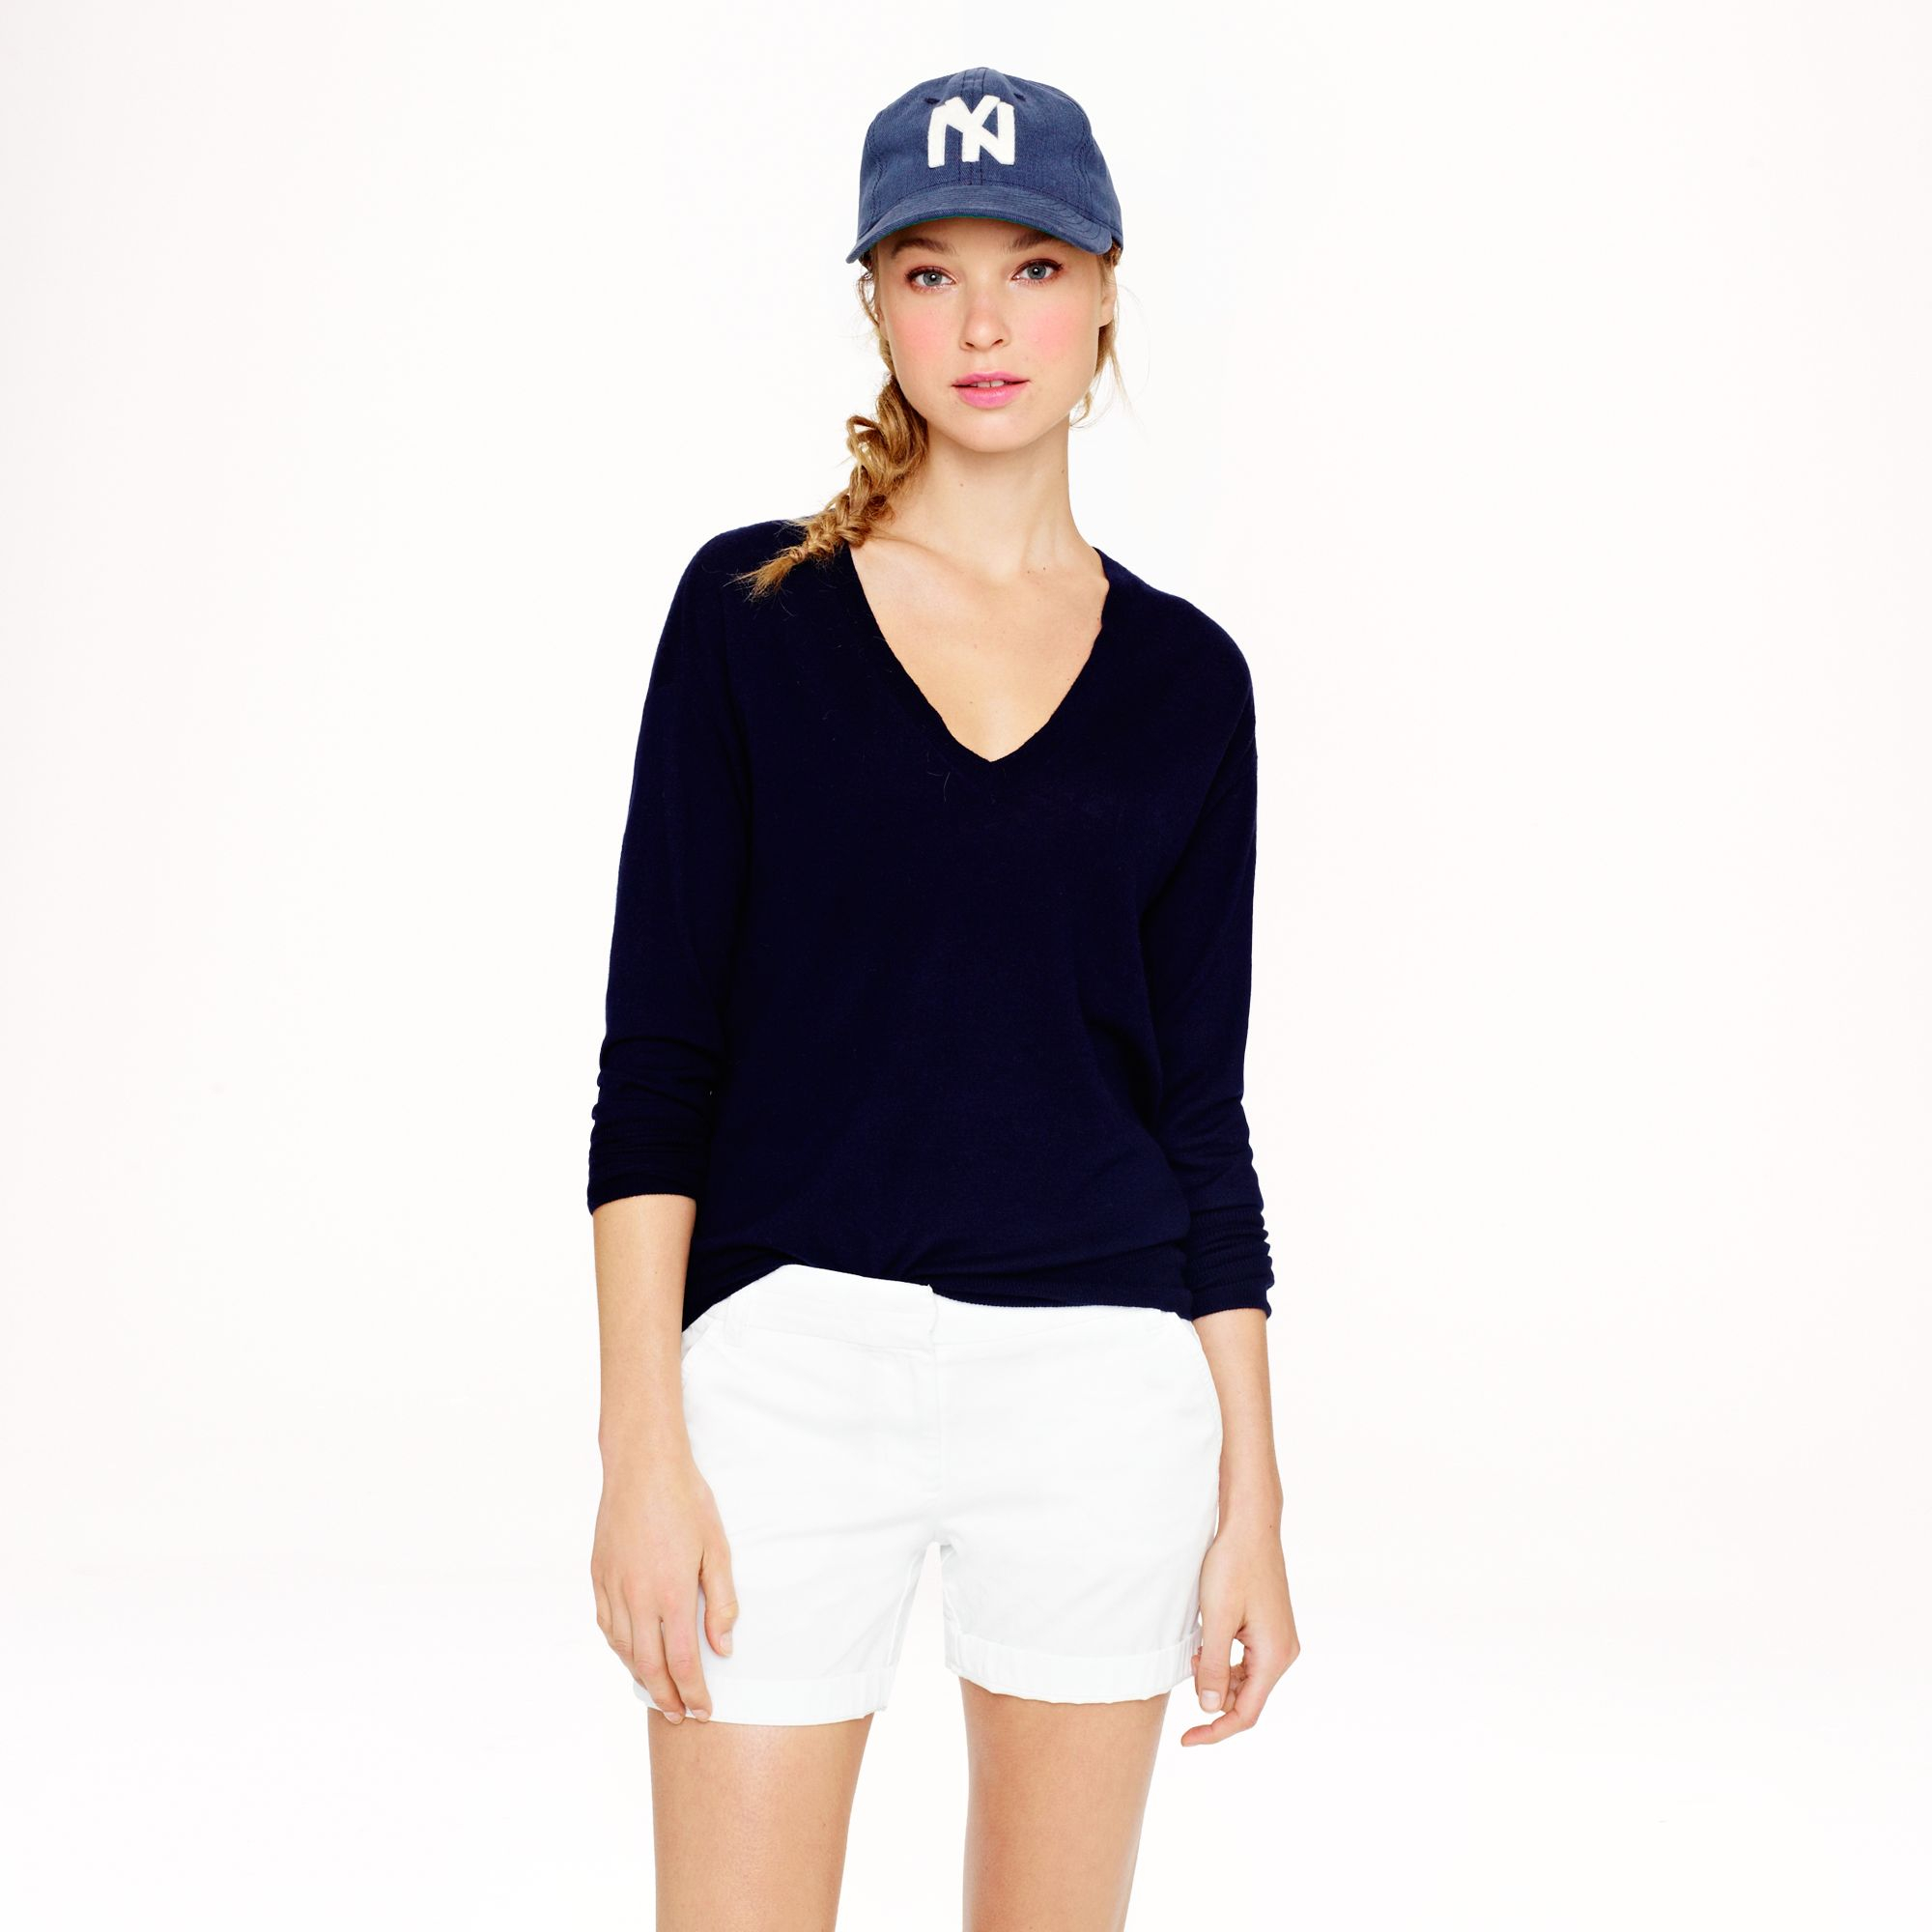 Lyst - J.Crew Collection Featherweight Cashmere V-neck Sweater in Blue 224a69f155